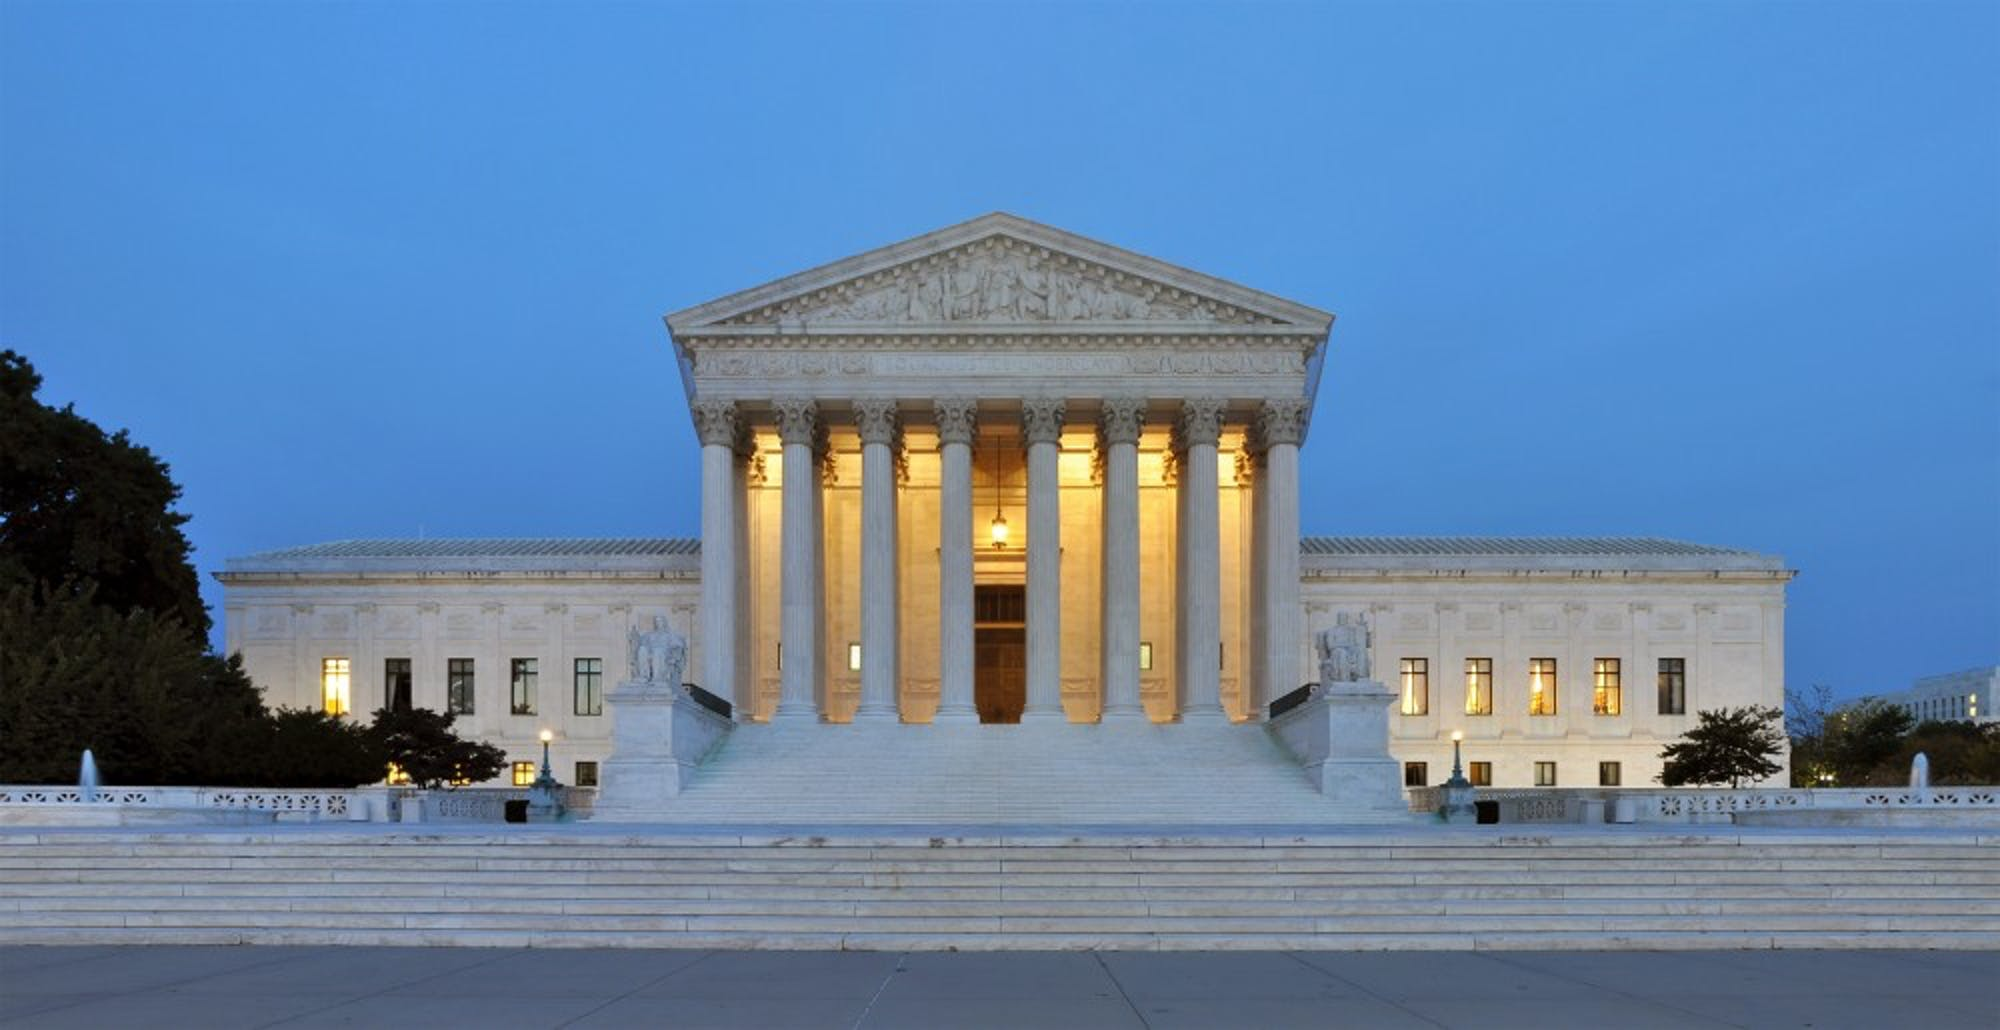 panorama-of-united-states-supreme-court-building-at-dusk